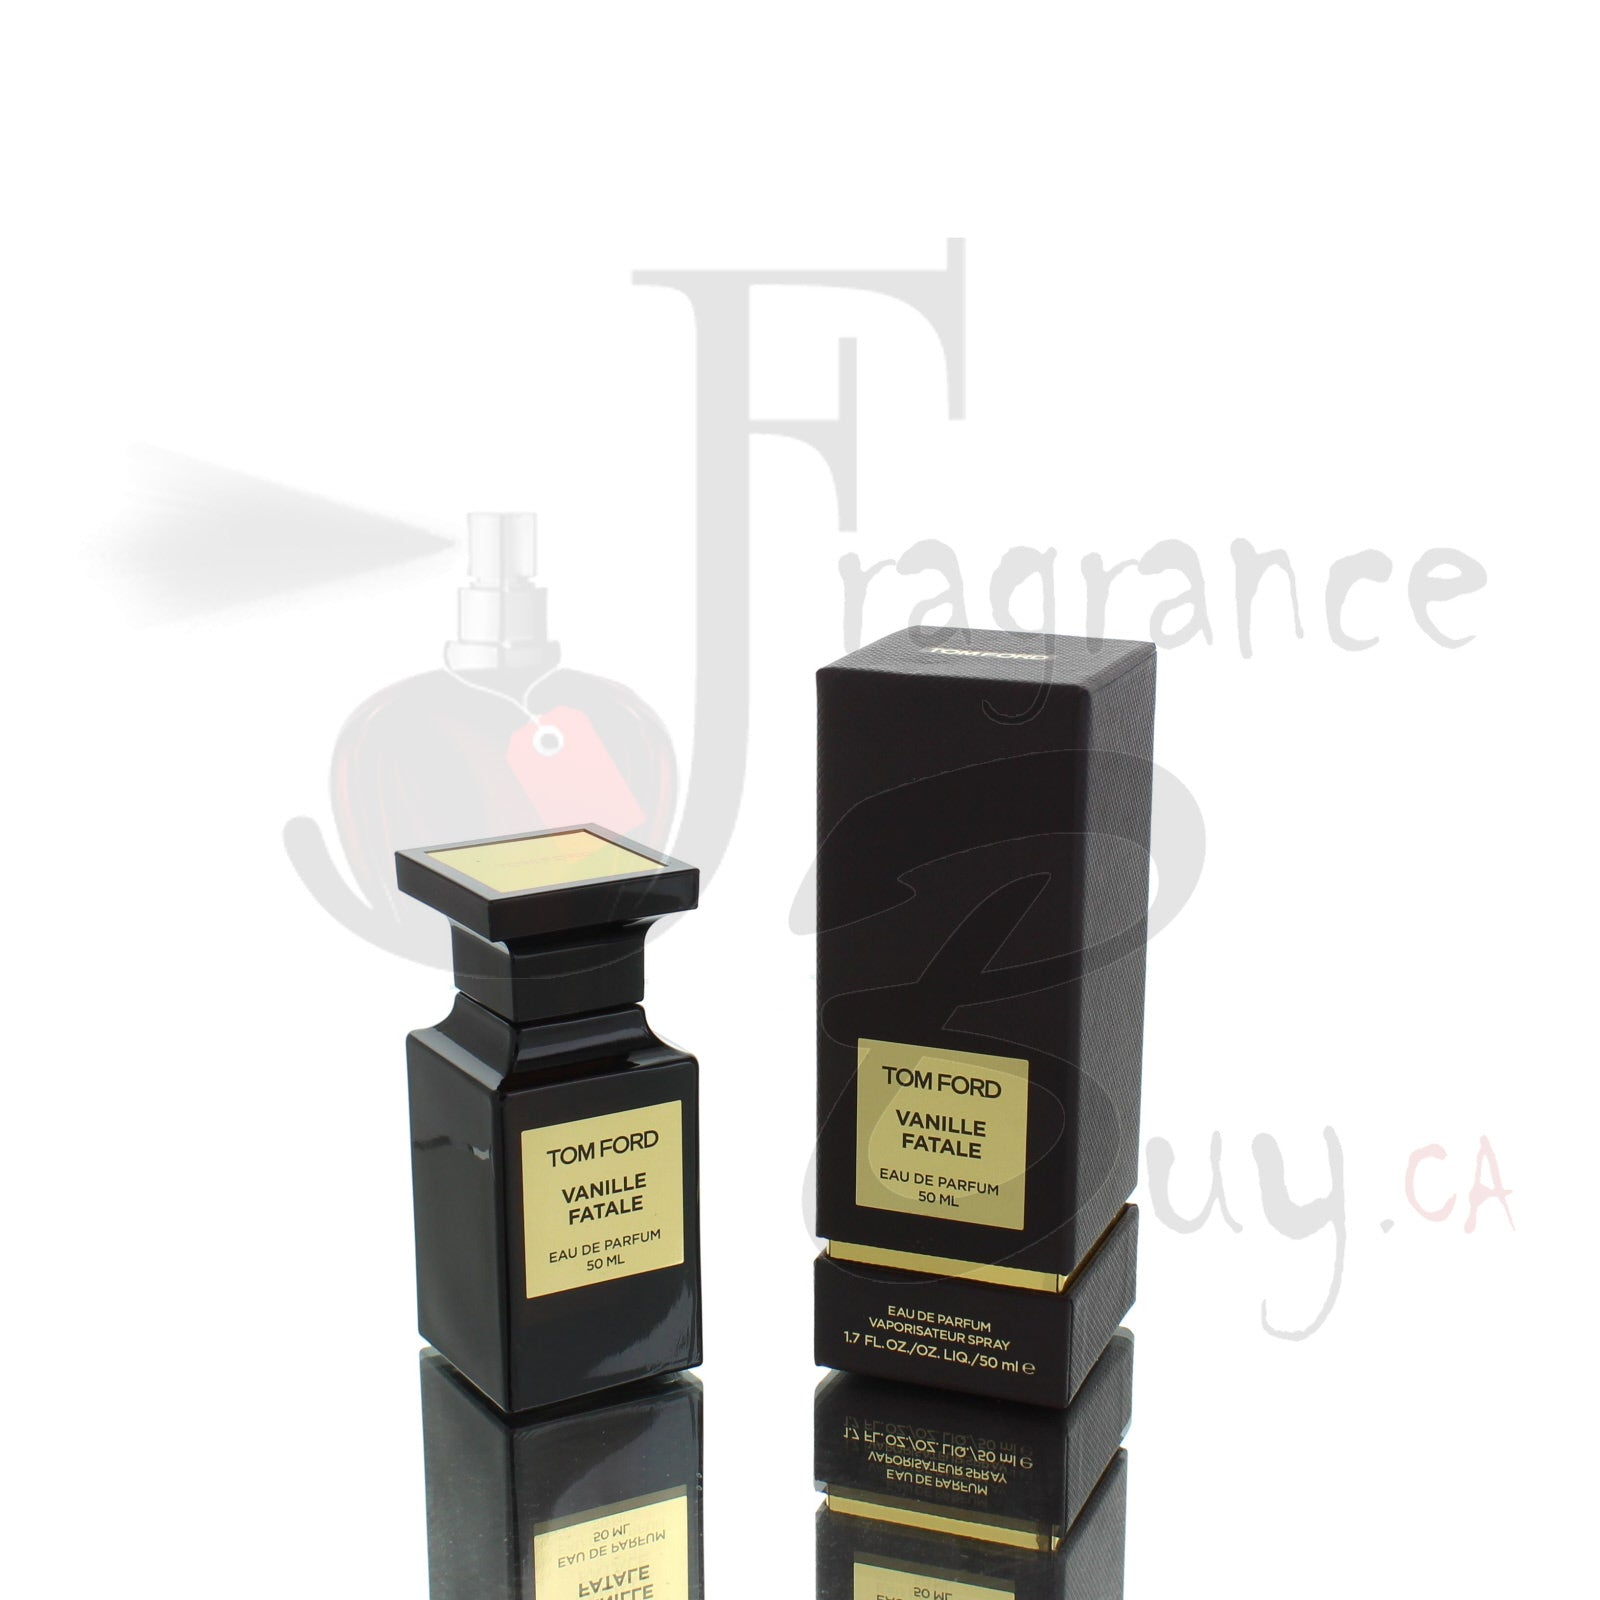 Tom Ford Vanille Fatale For Man/Woman